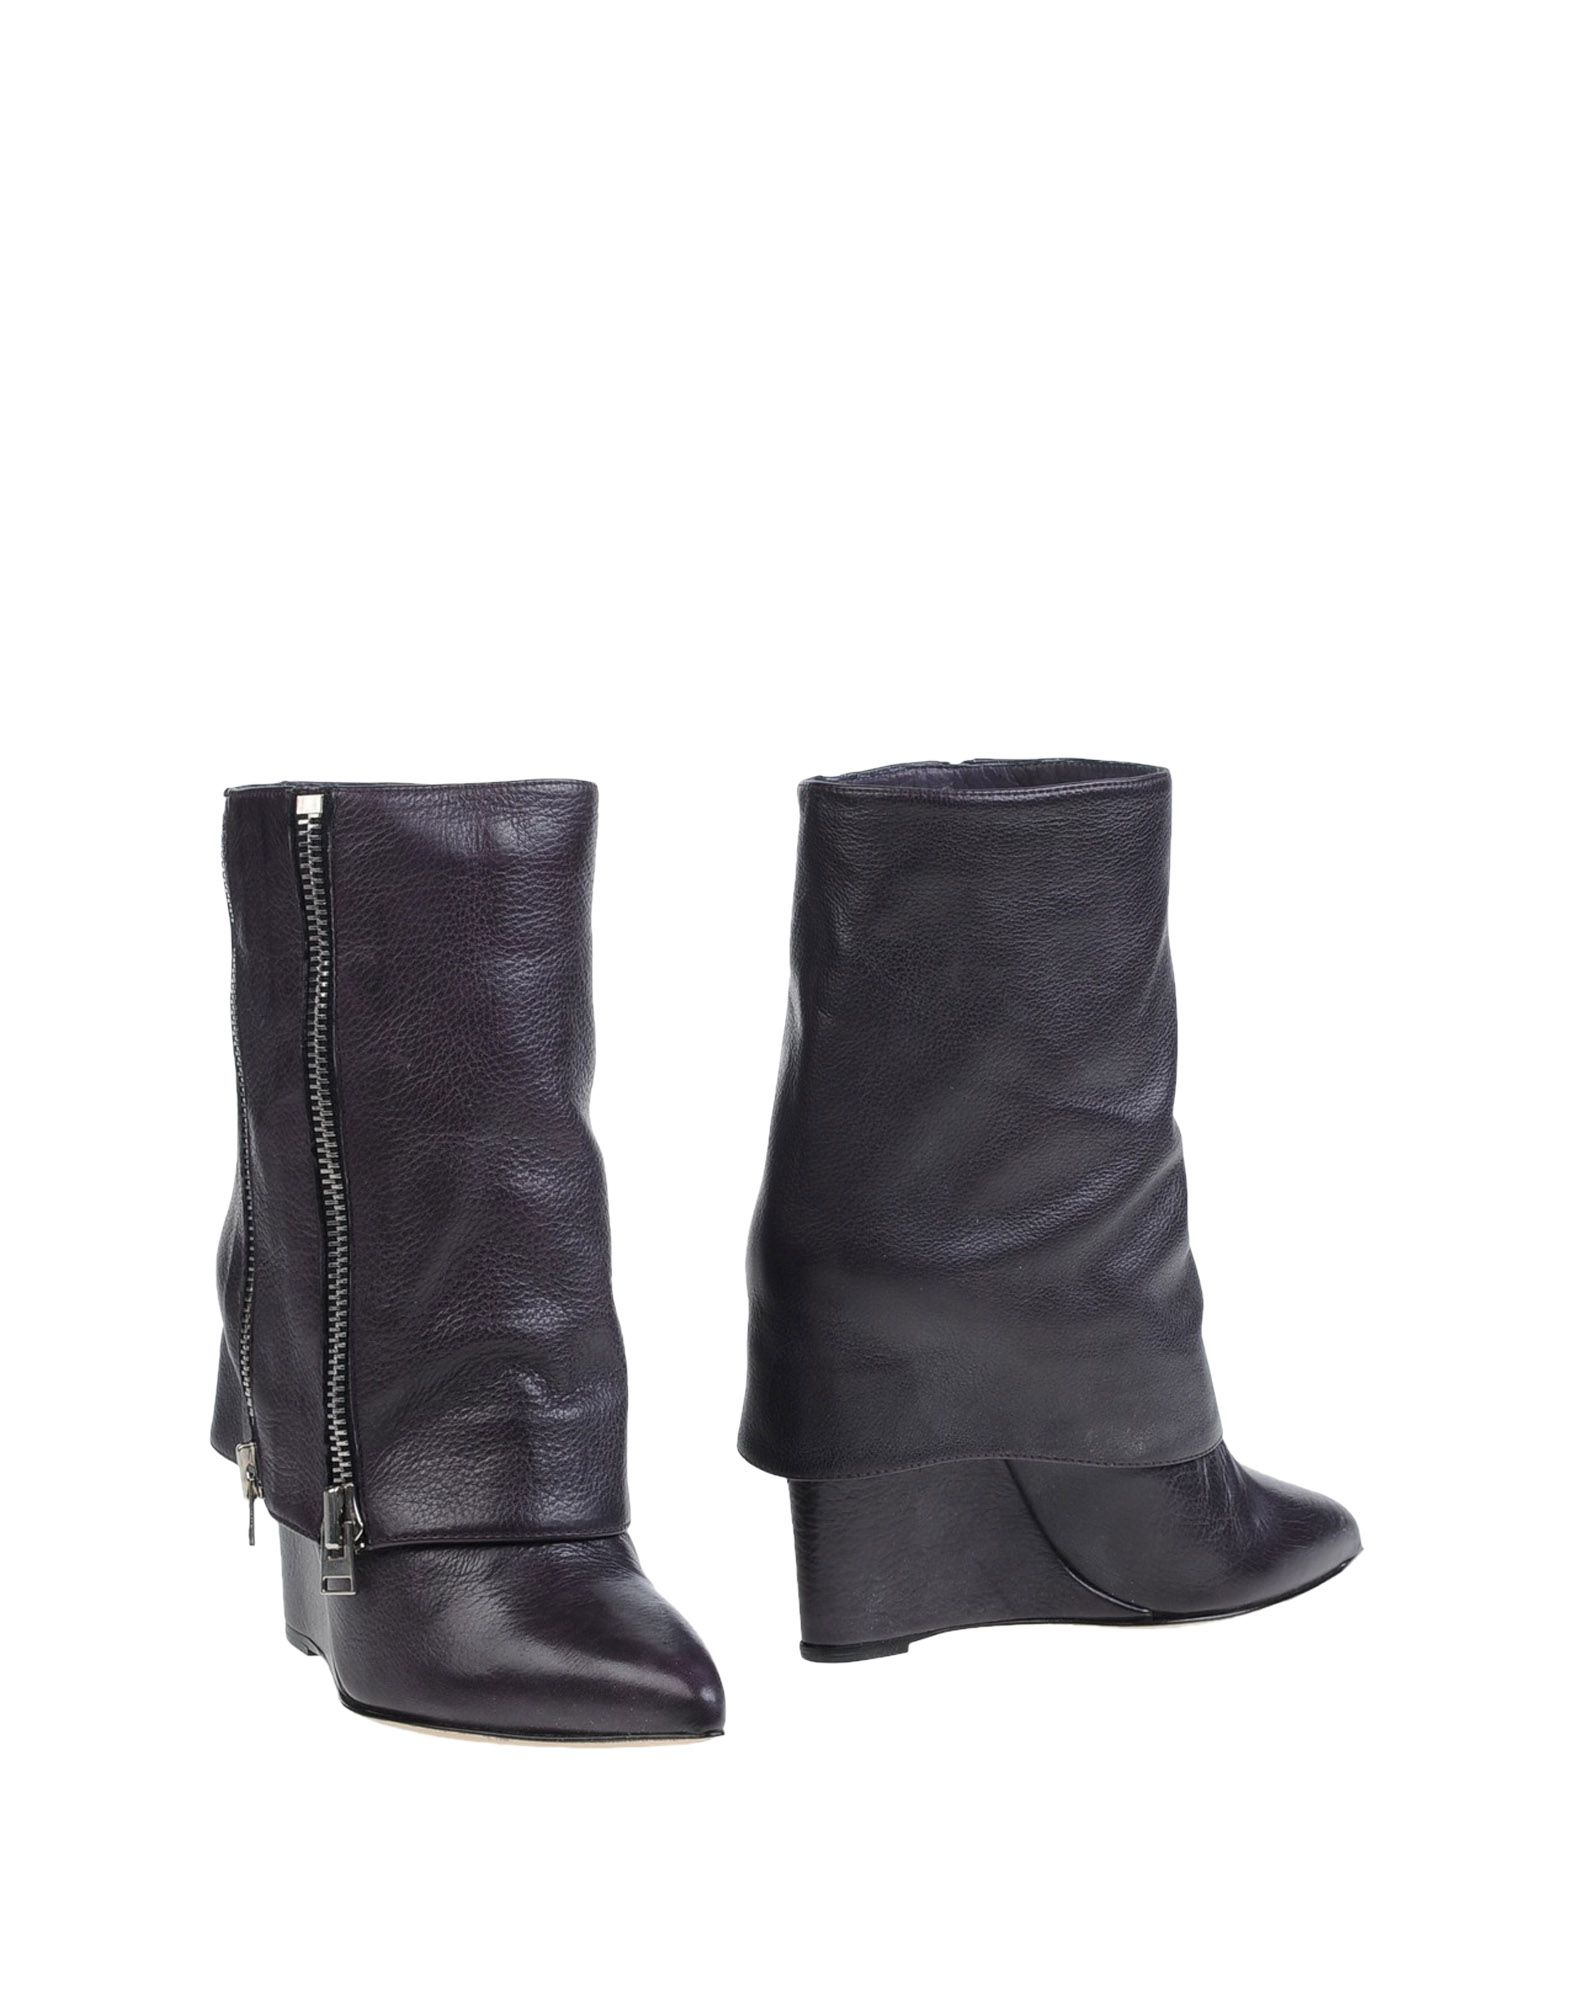 Lyst Boots Particulier In Ankle Purple Hotel xYYCrqpw